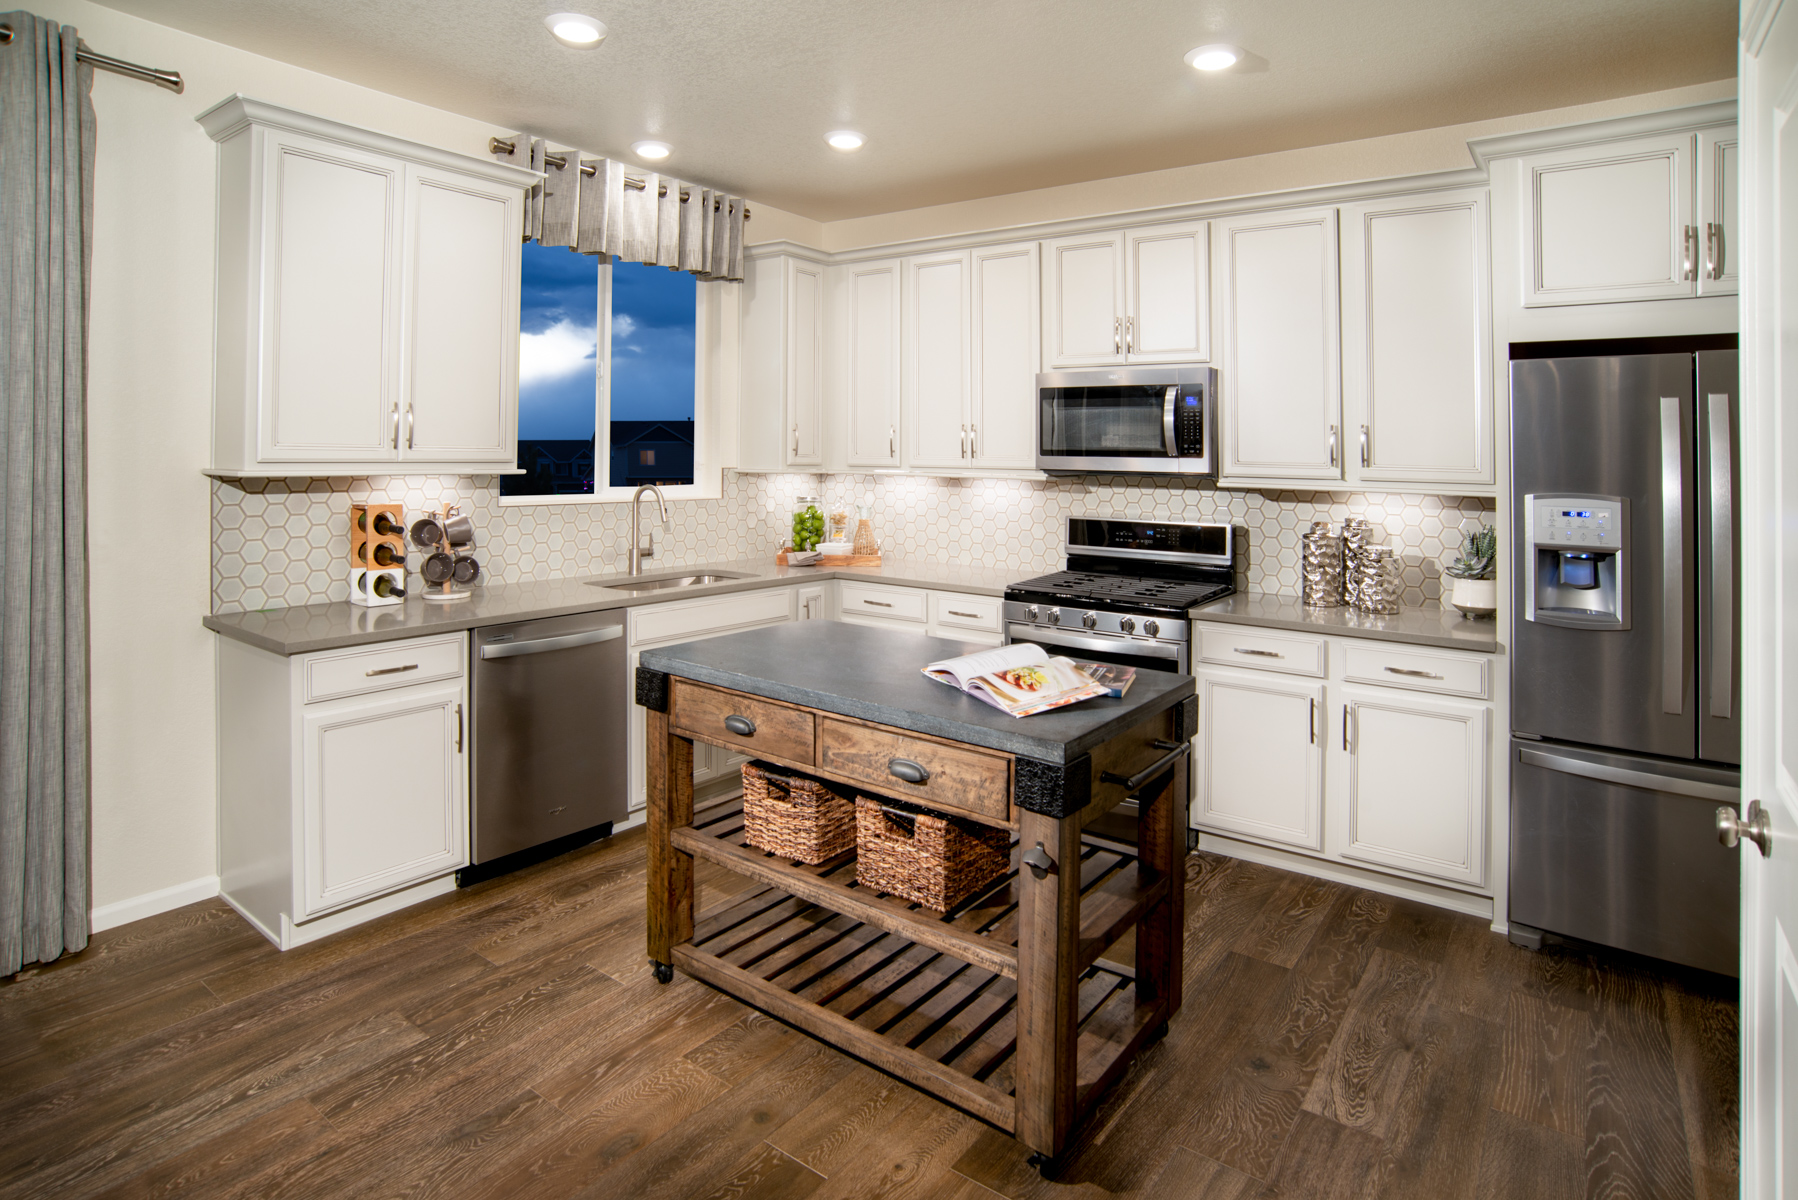 KB model home kitchen in Loveland, CO